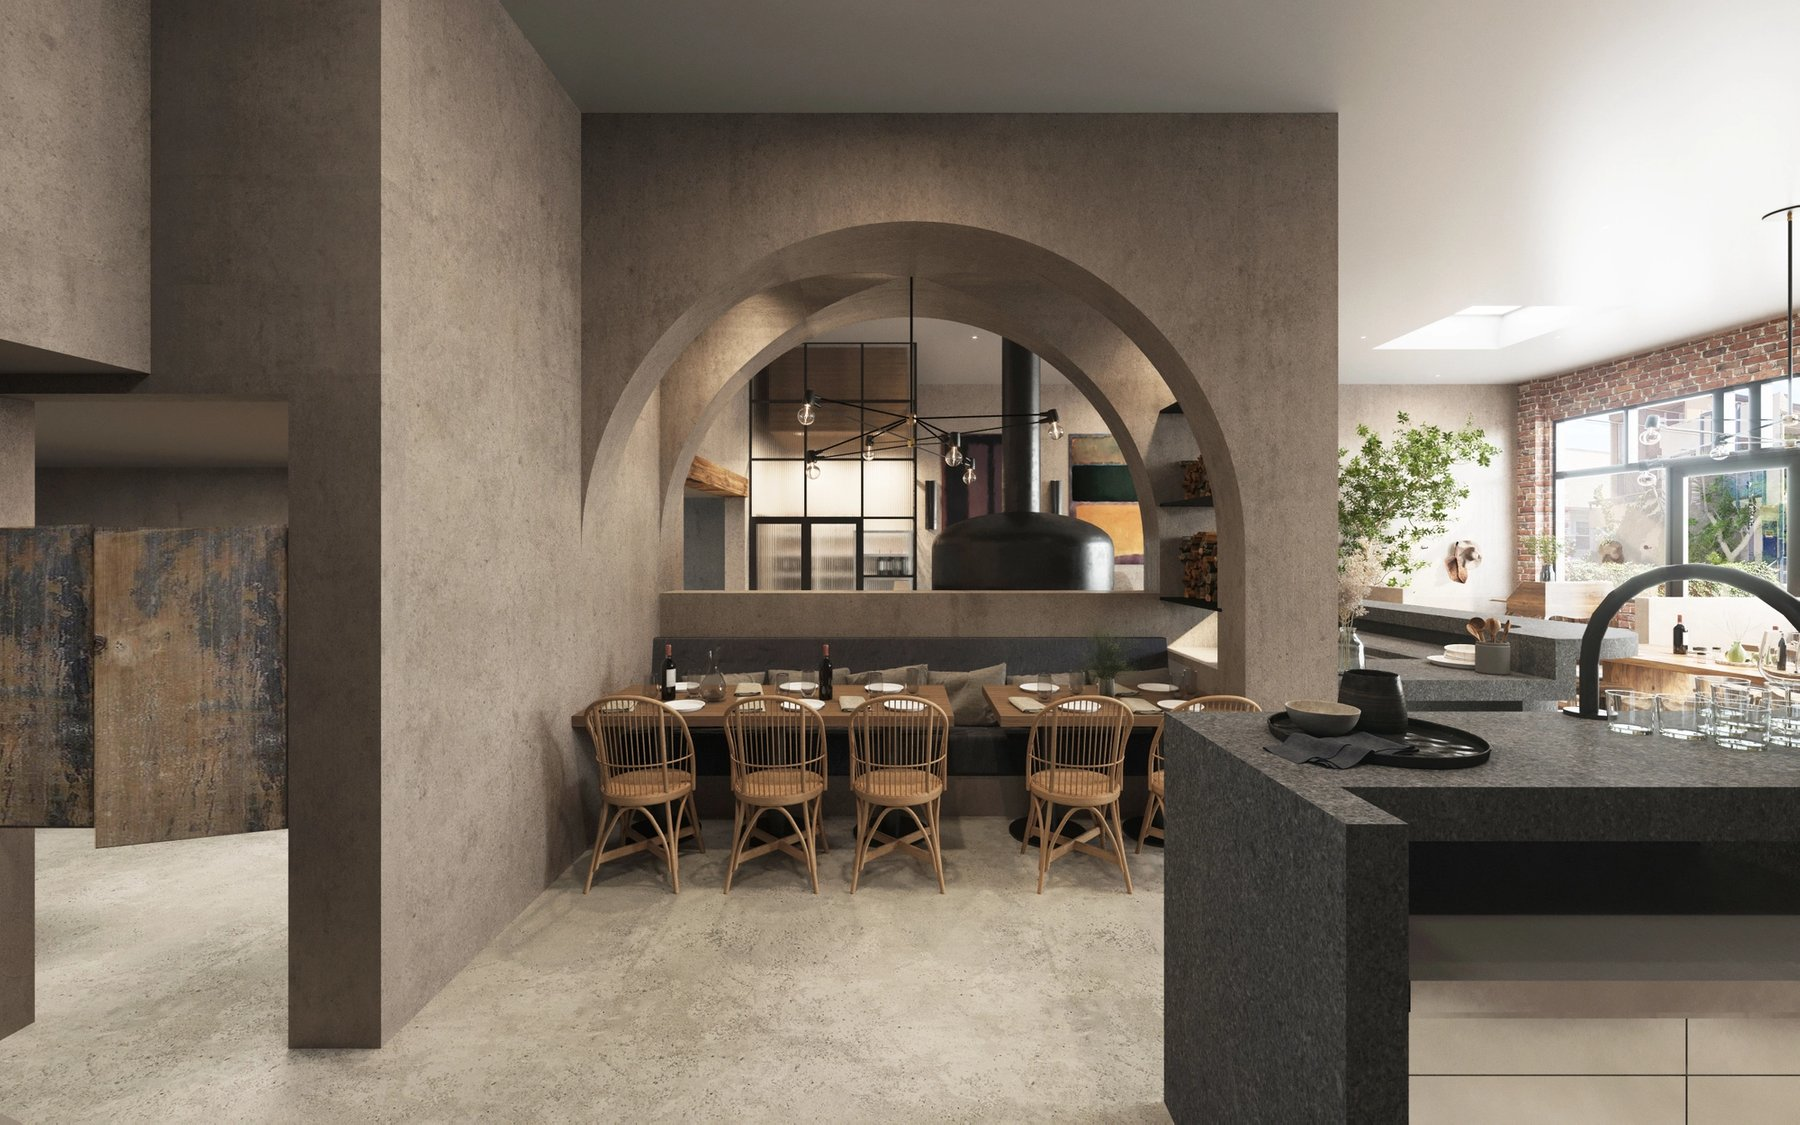 More intimate seating below a plastered archway with the hearth oven and wine room beyond.